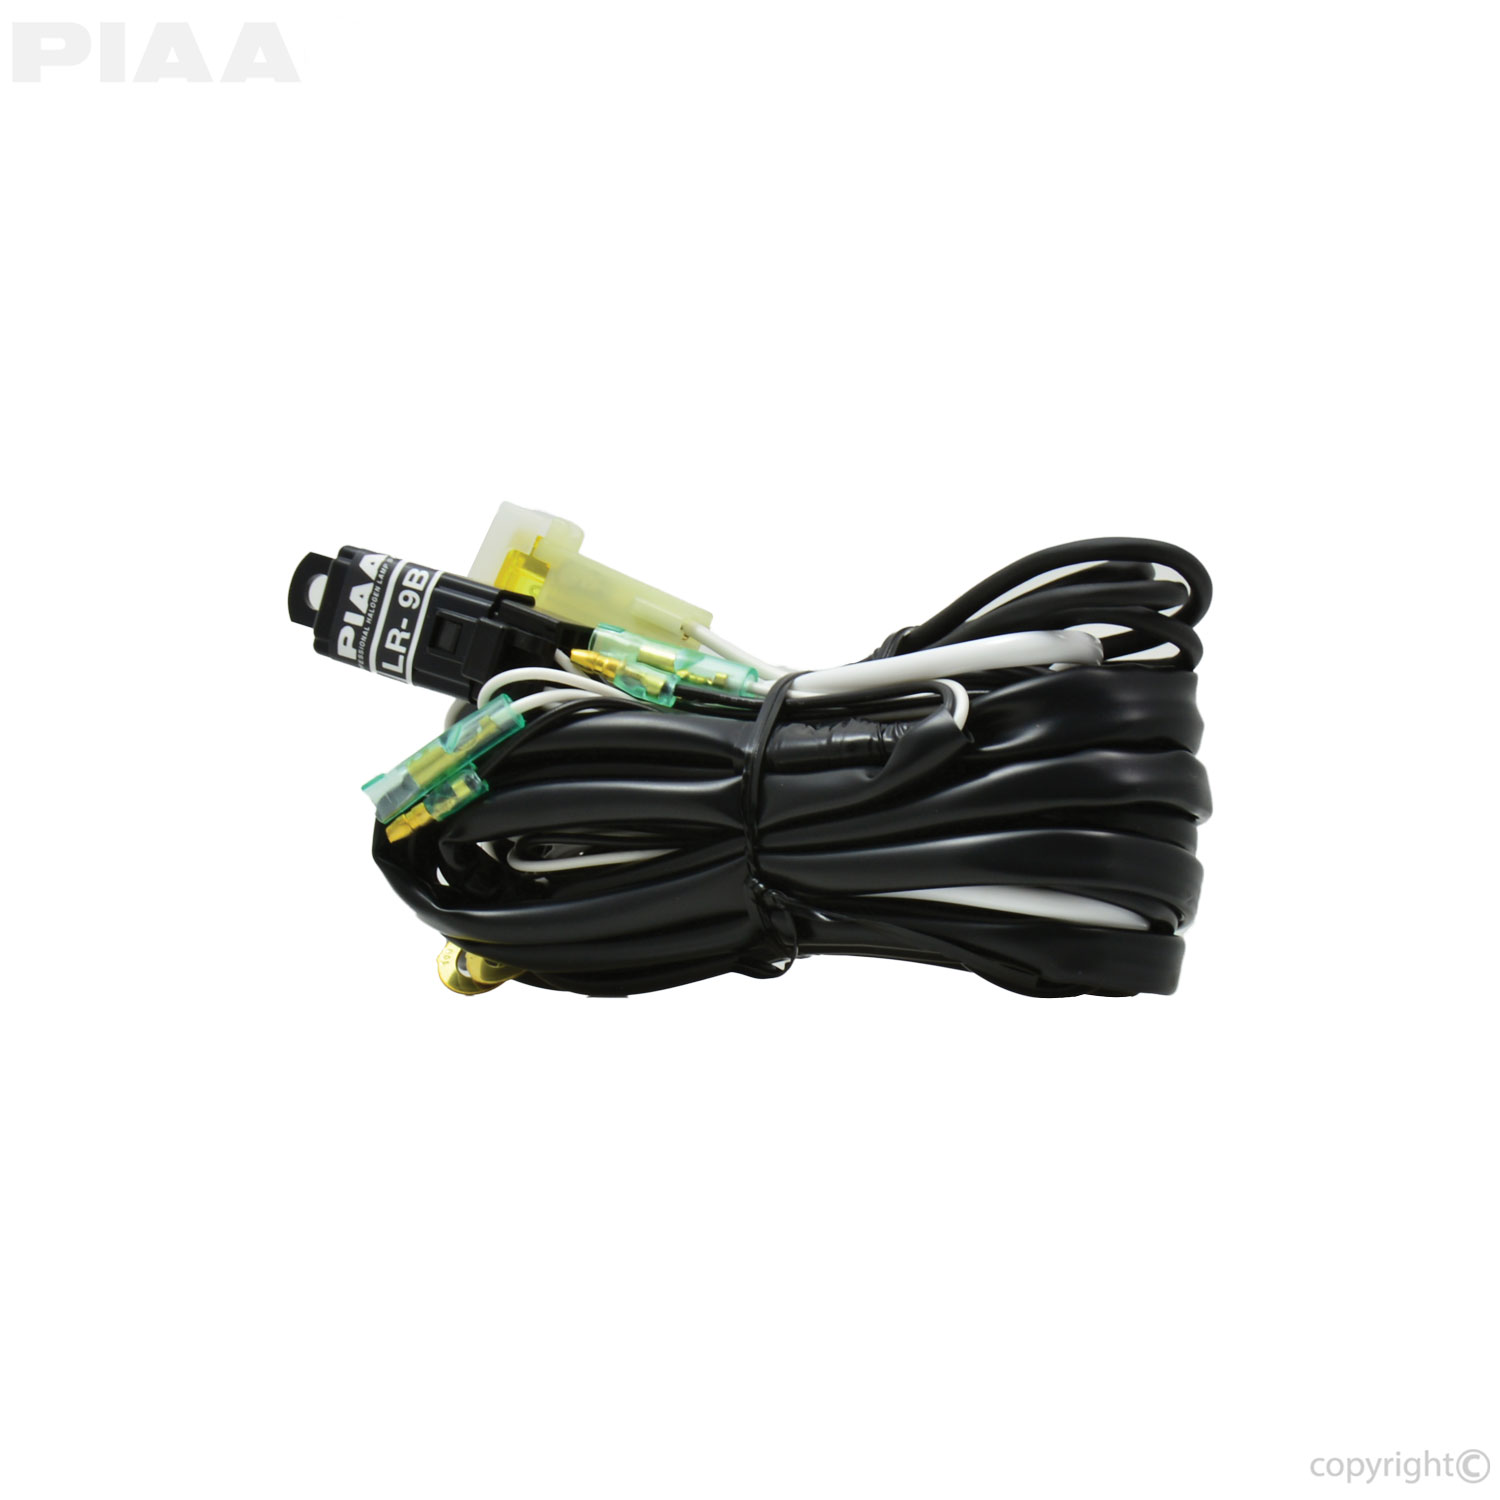 piaa 34042 harness hr?bw=1000&w=1000&bh=1000&h=1000 piaa piaa wiring harness up to (lr 9b) with bullet connectors 34042 piaa 520 wiring harness at alyssarenee.co